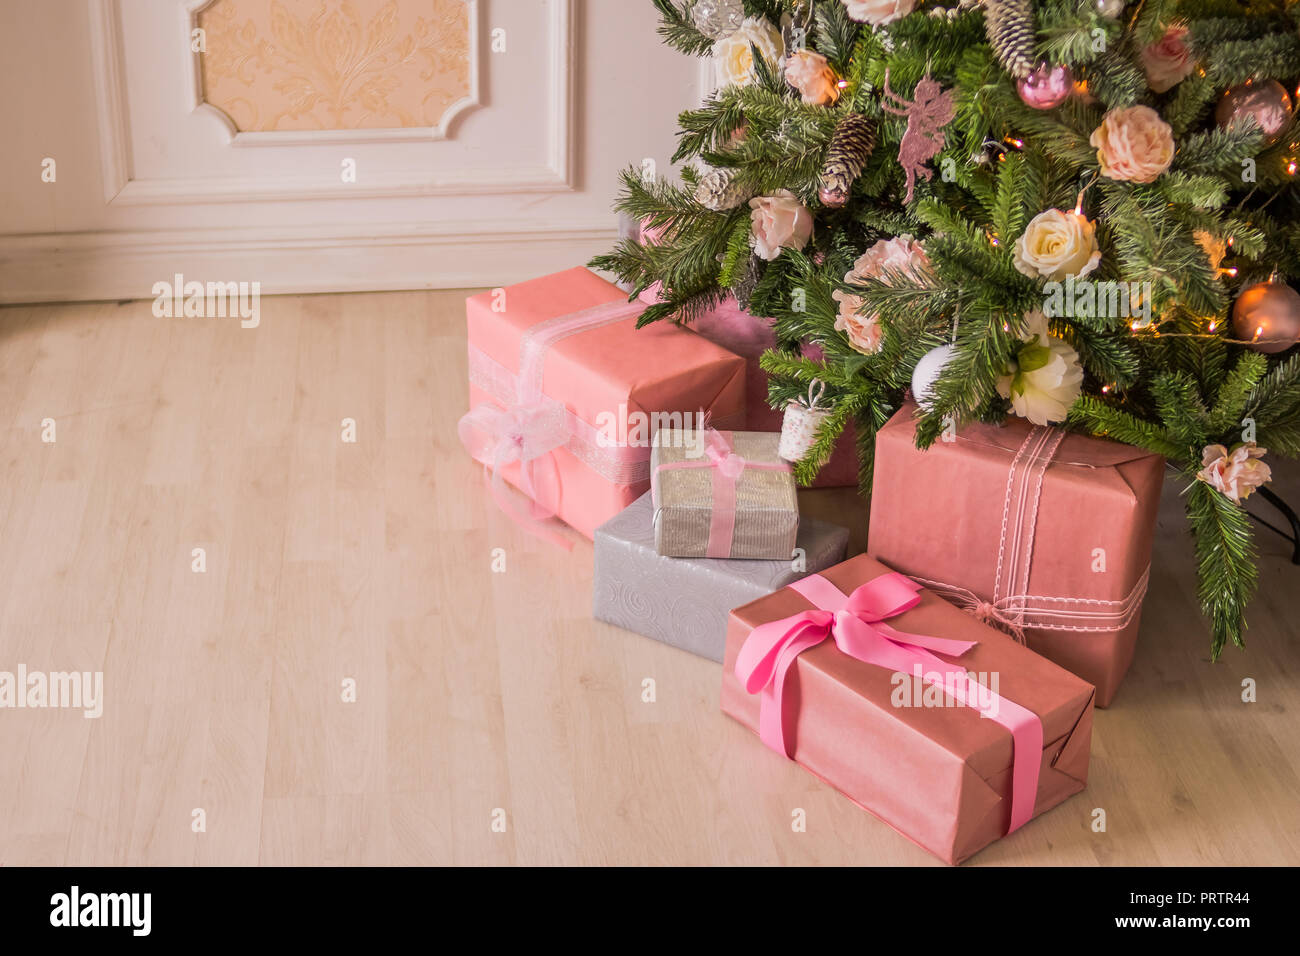 pastel christmaselegant christmas tree with decorations and gifts on elegant hardwood floor pink christmas gift boxes with pink and silver ribbon next to